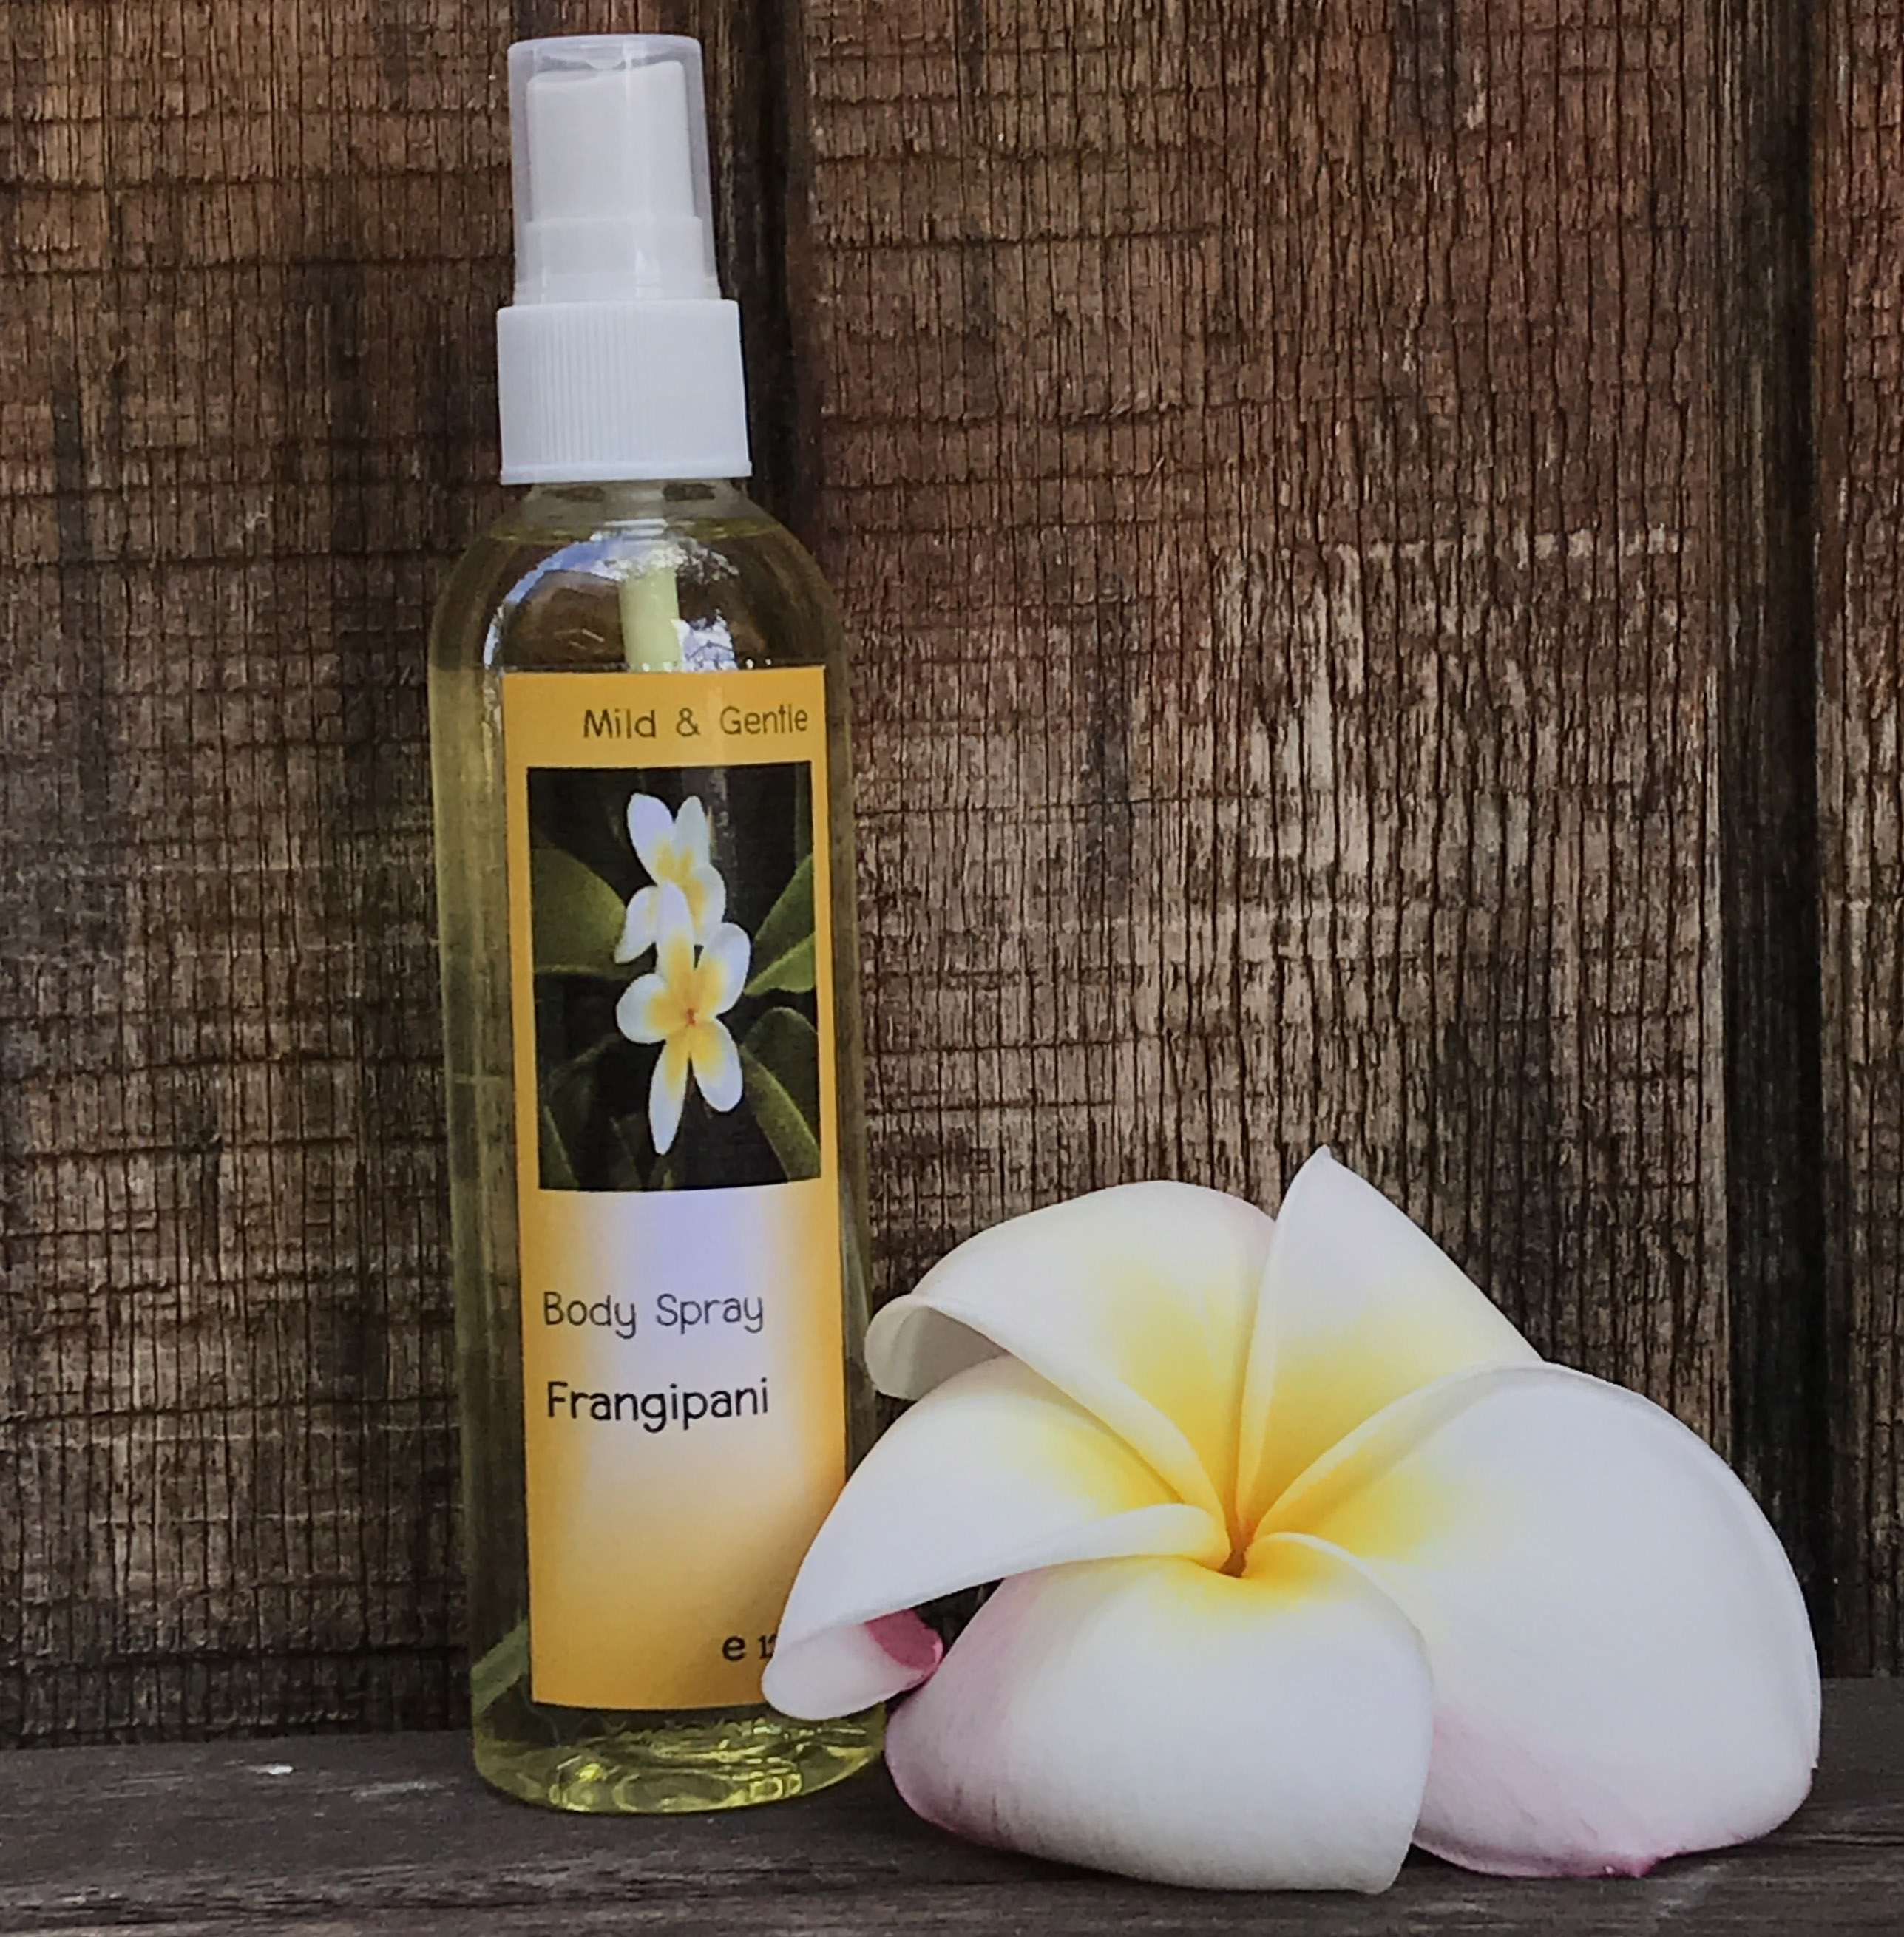 Frangipani Body Spray 120g